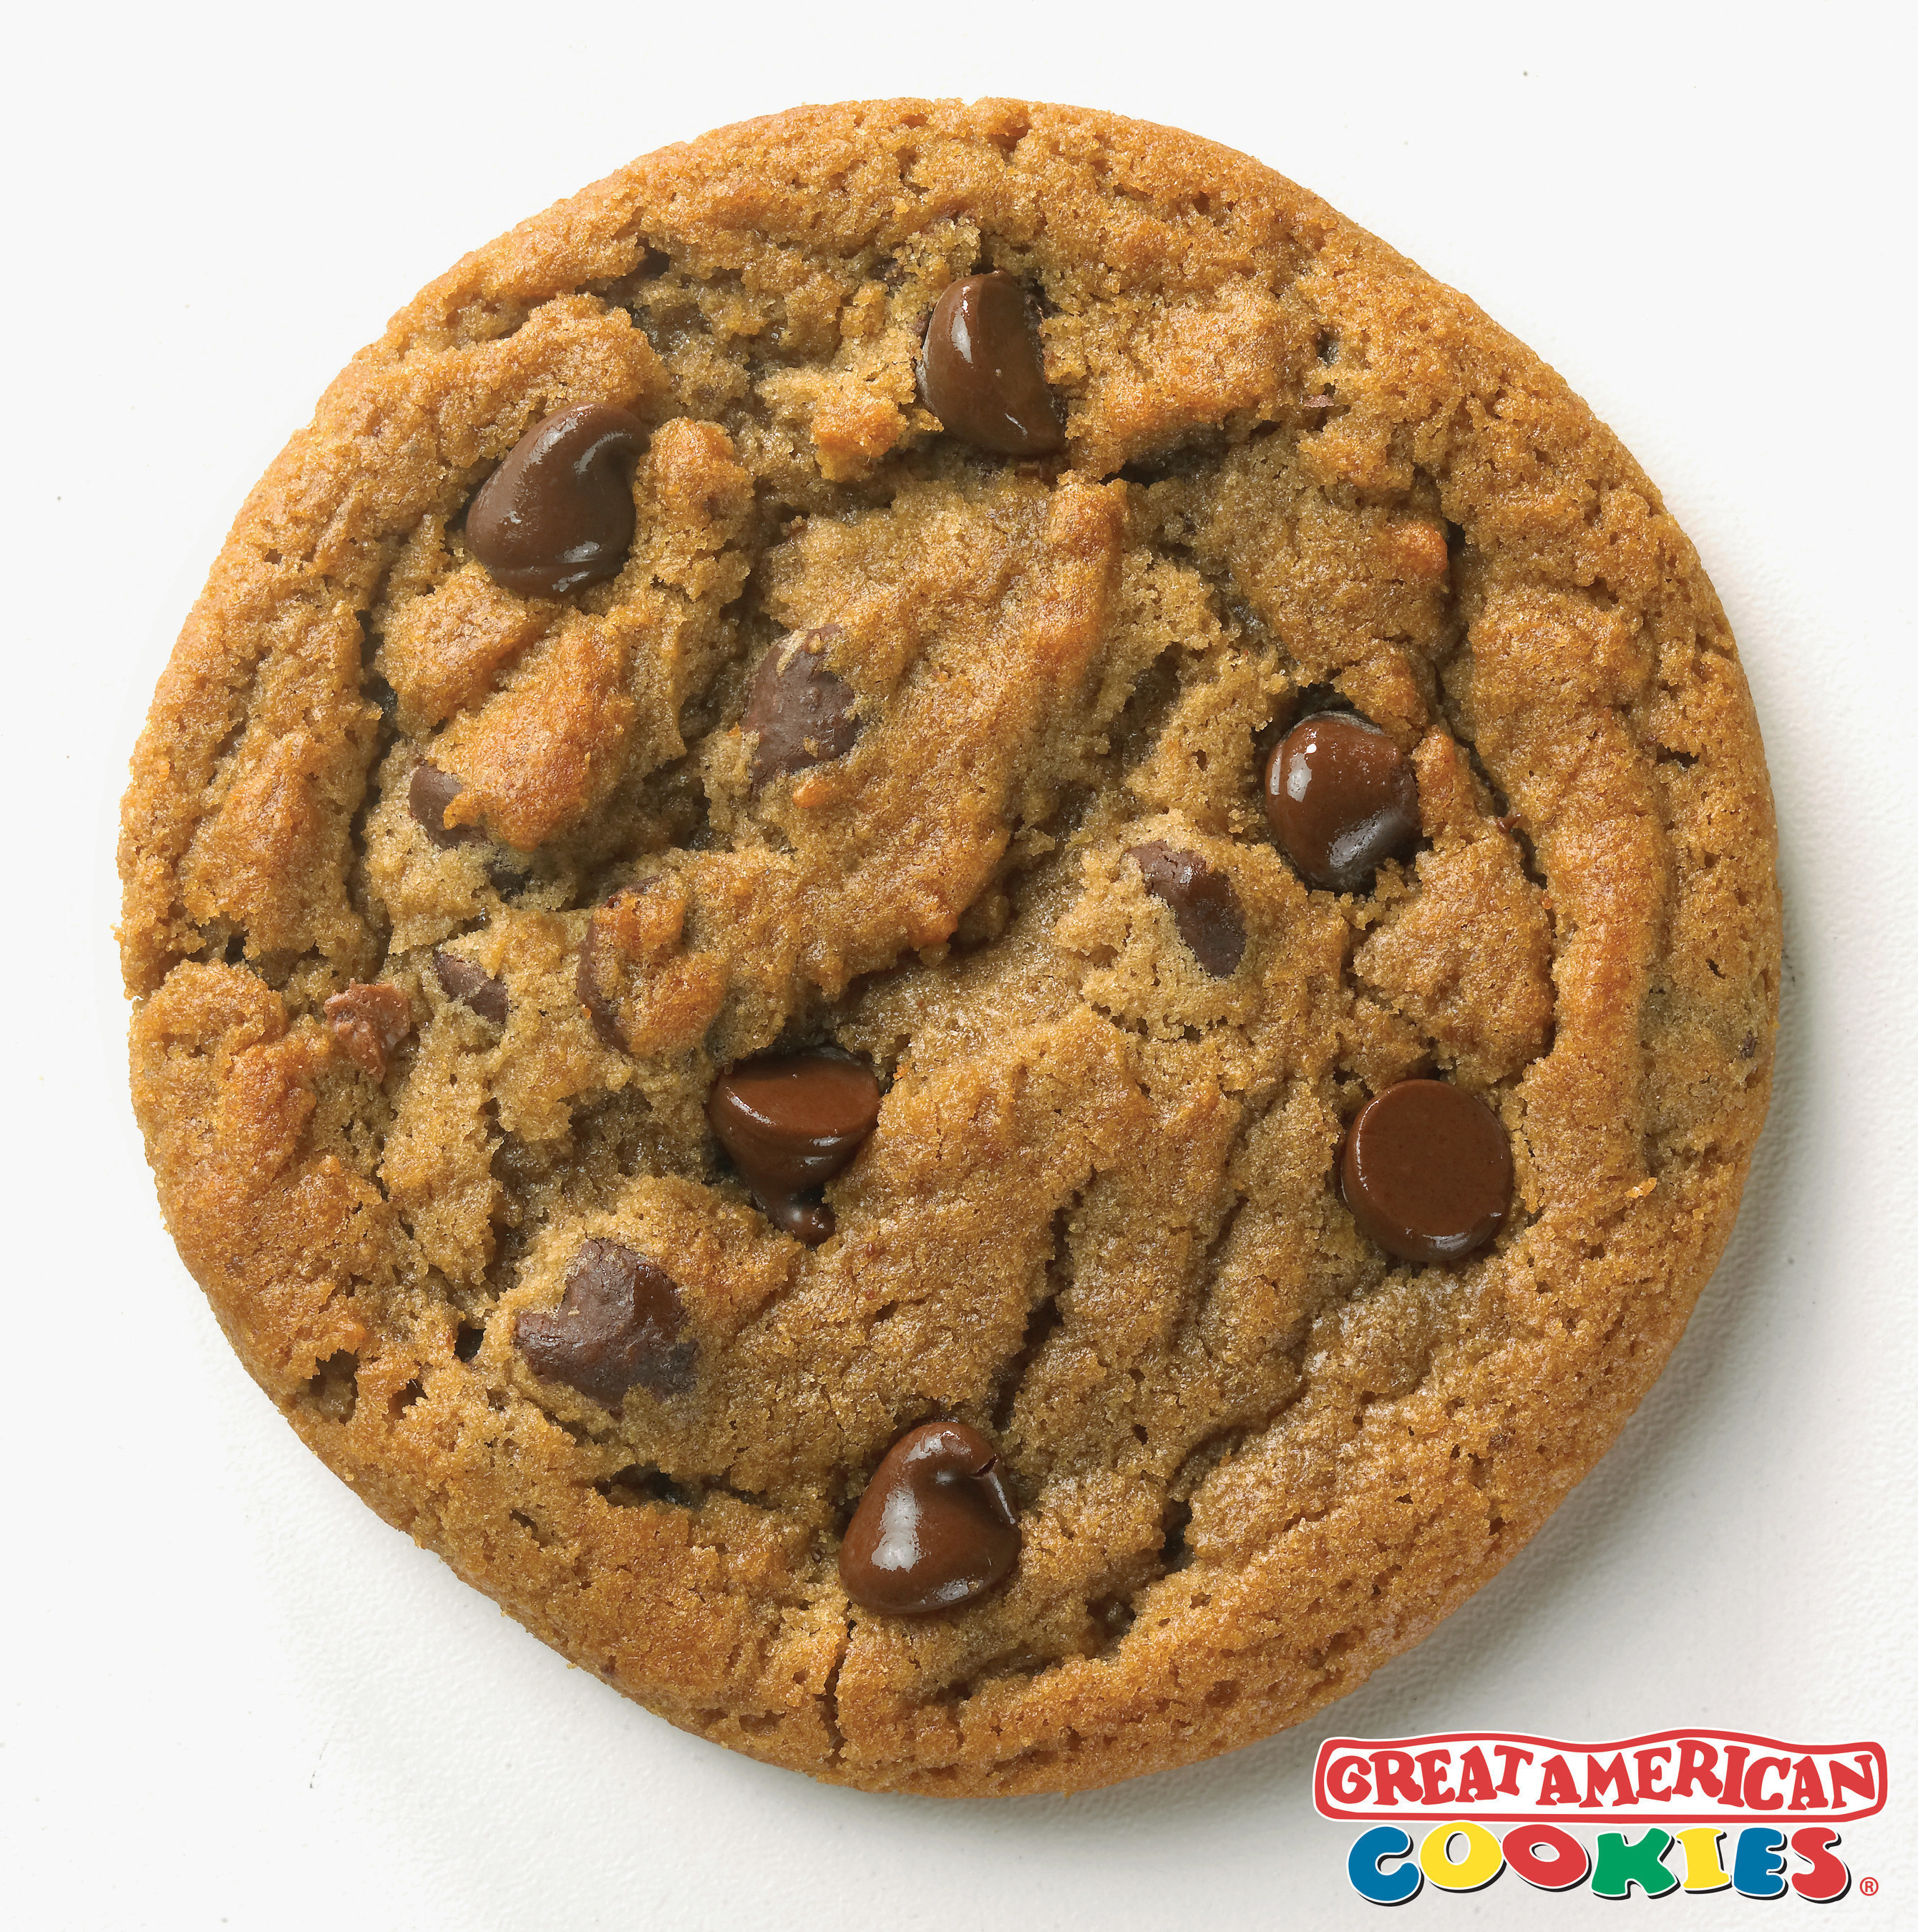 Great American Cookies(R) is giving away a free original chocolate chip cookie to customers in celebration of Tax Day on April 18, 2016.